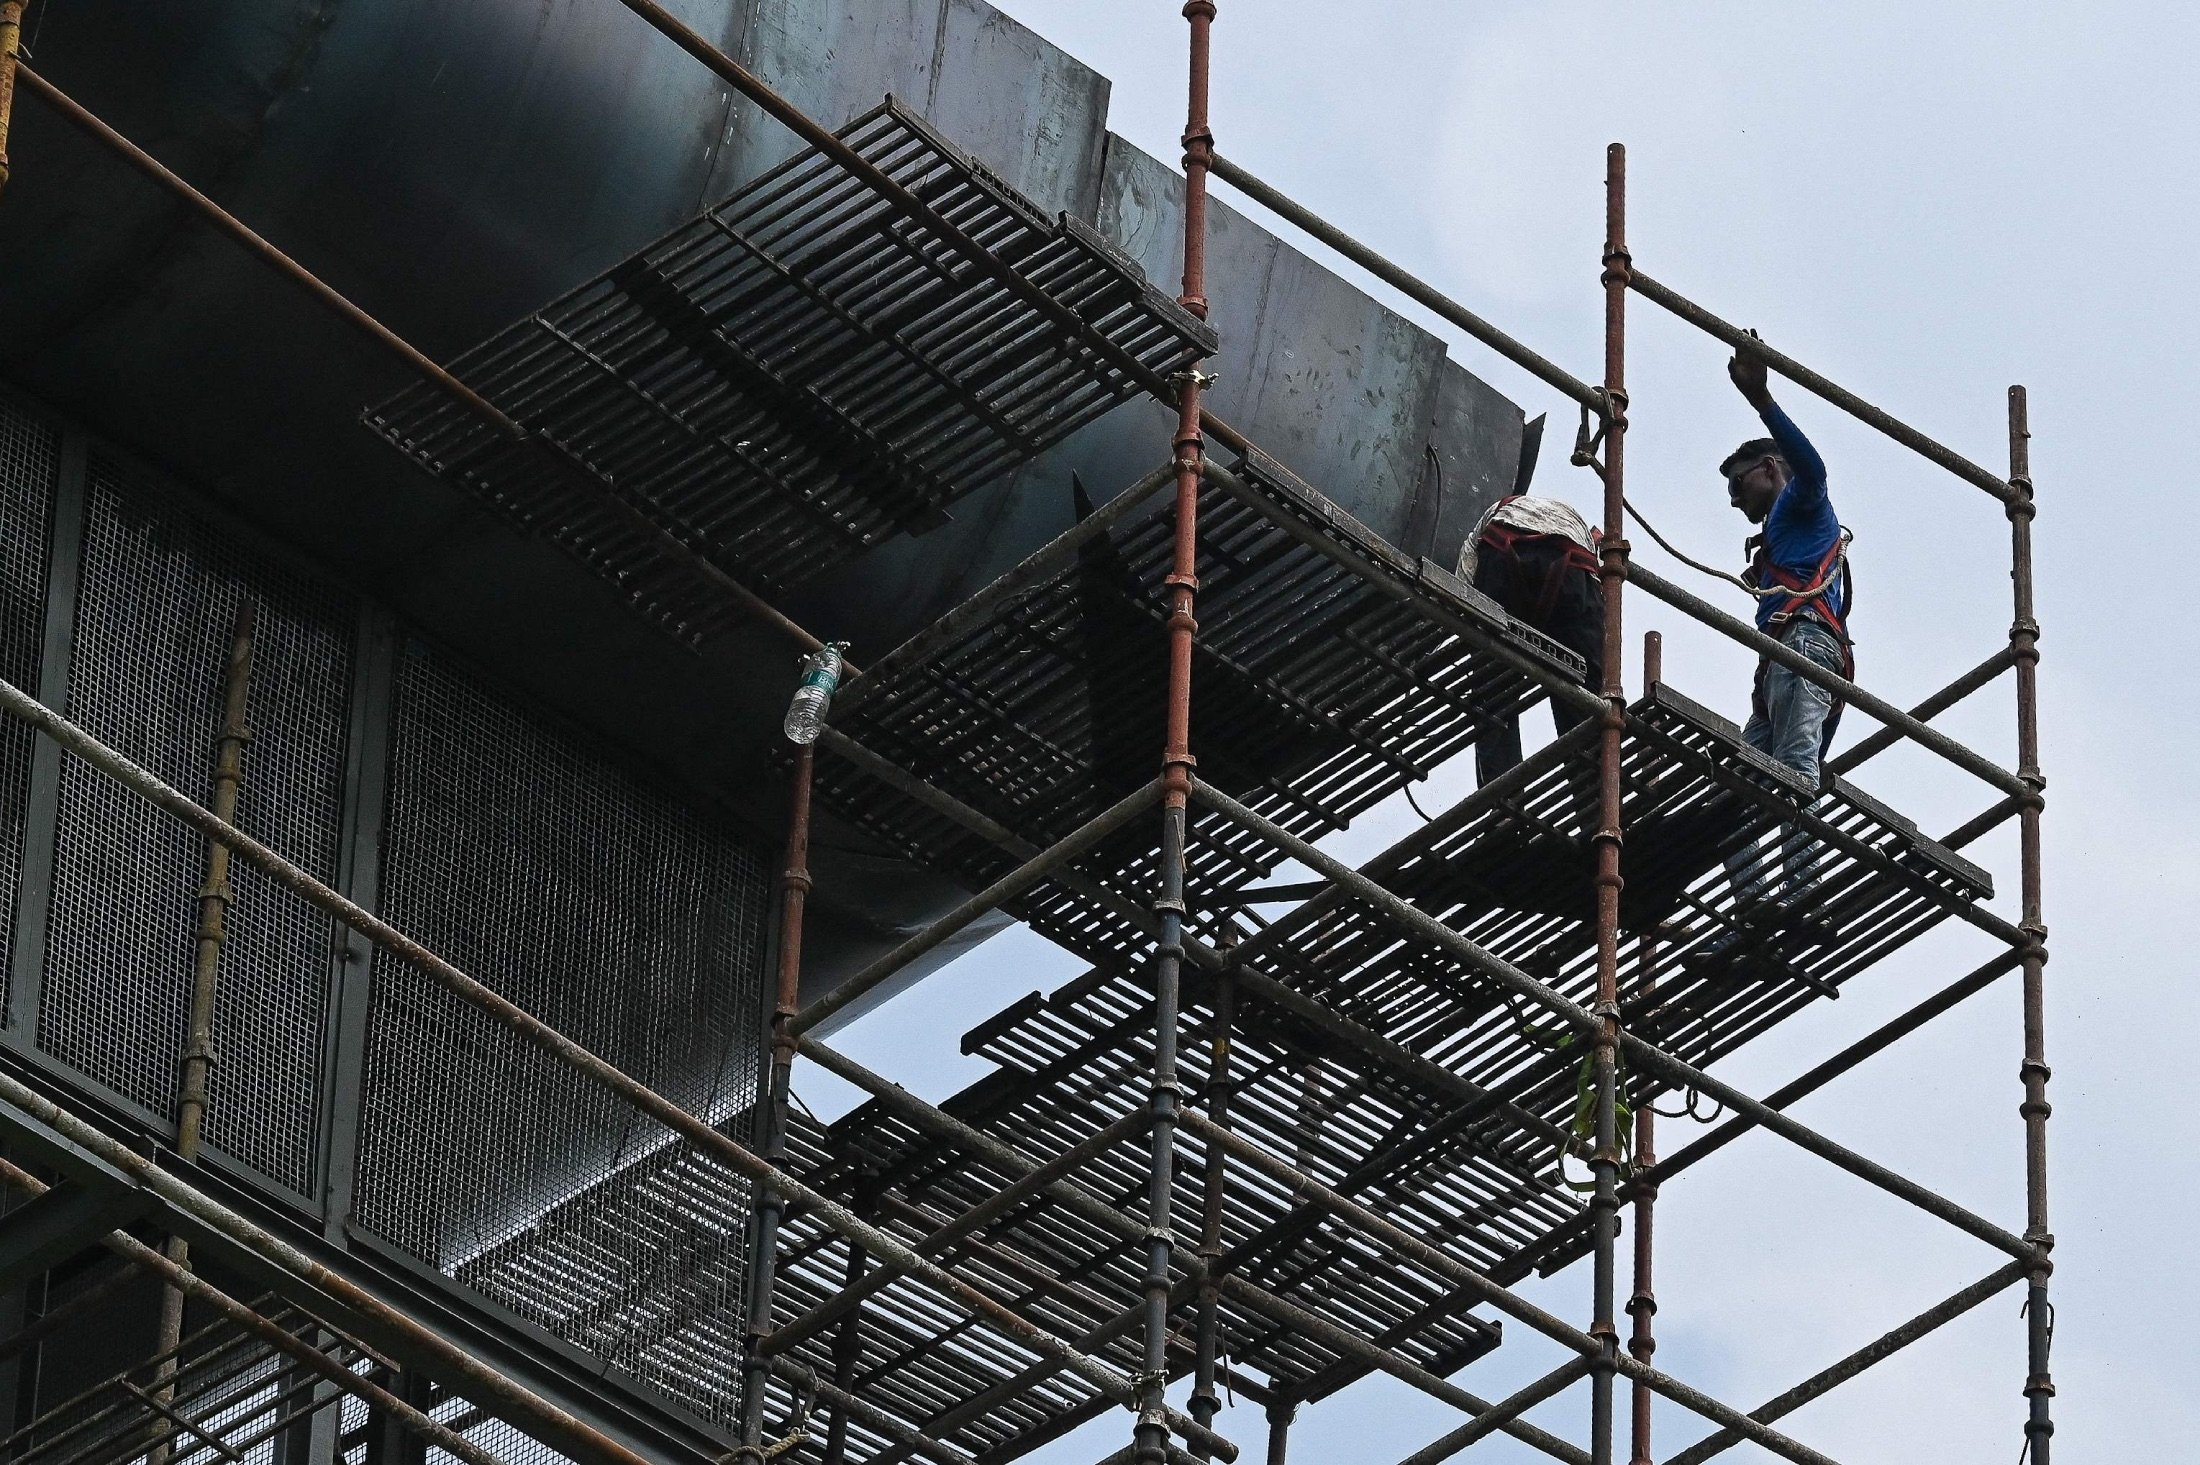 Workers carry on works on a scaffolding structure of a 25-meter (82-foot) high smog tower, built to purify the air during pollution season, in New Delhi, India, Aug. 23, 2021. (AFP Photo)